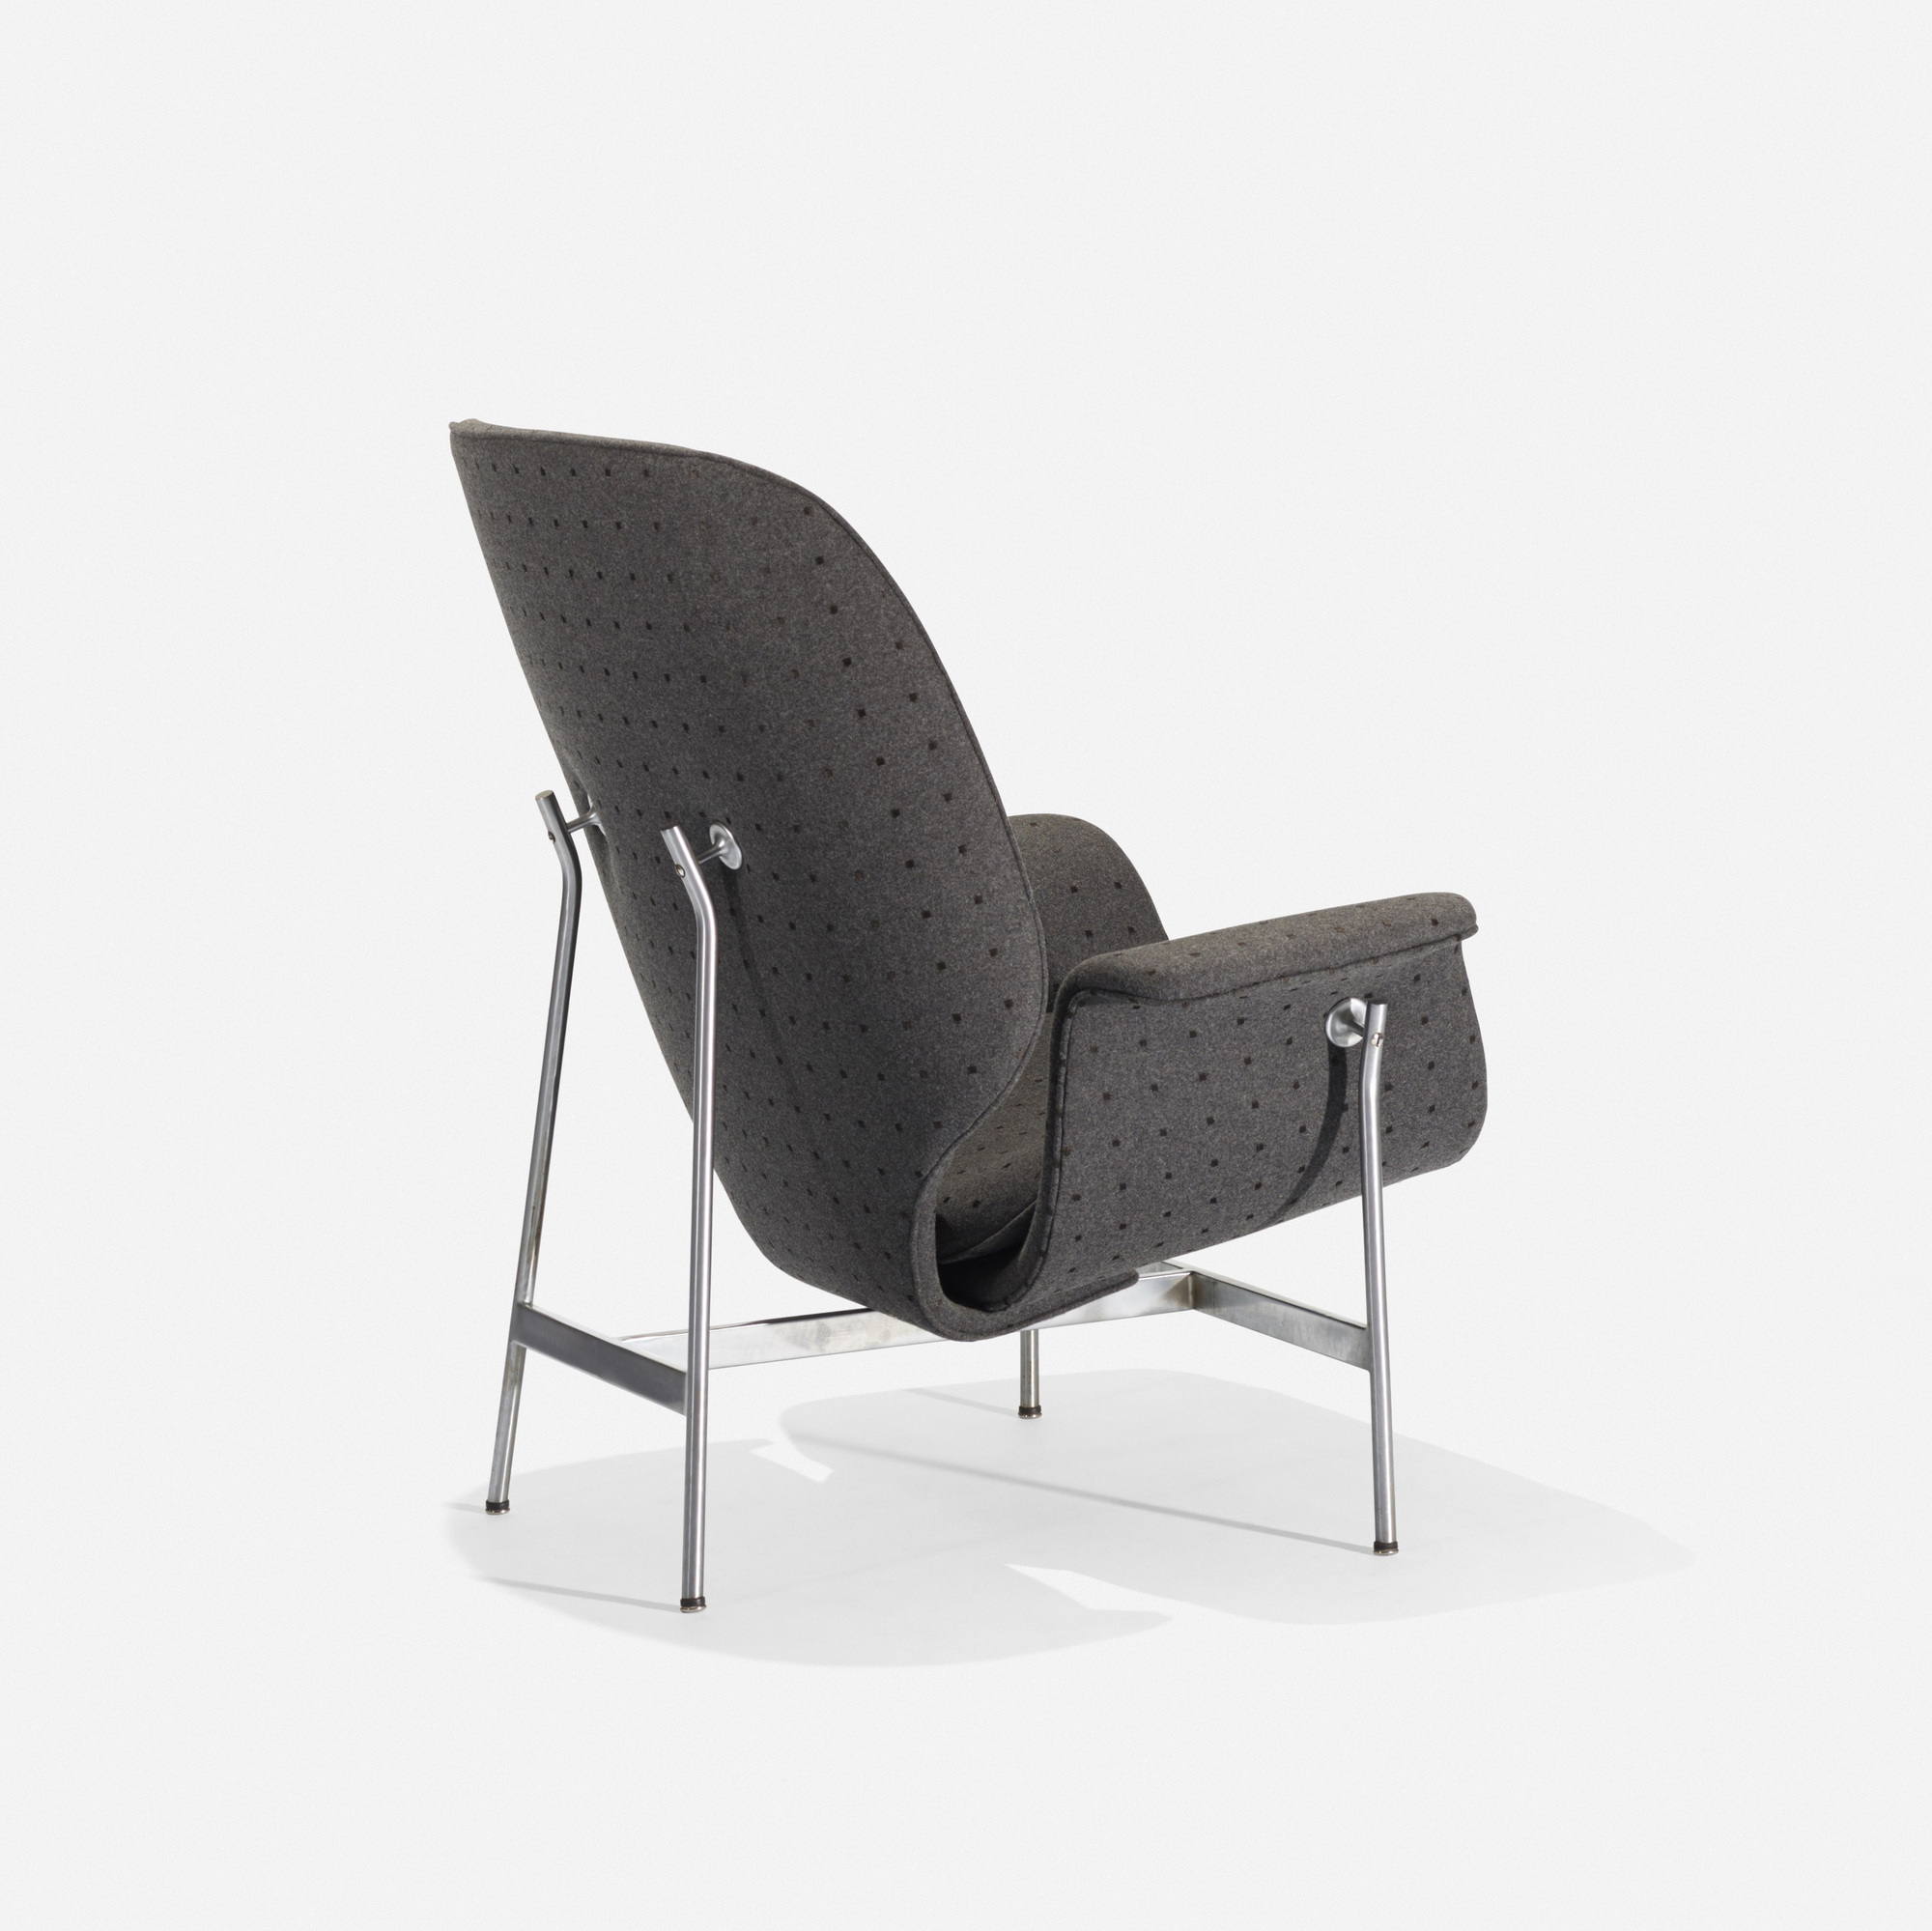 100: George Nelson & Associates / Kangaroo chair (3 of 4)